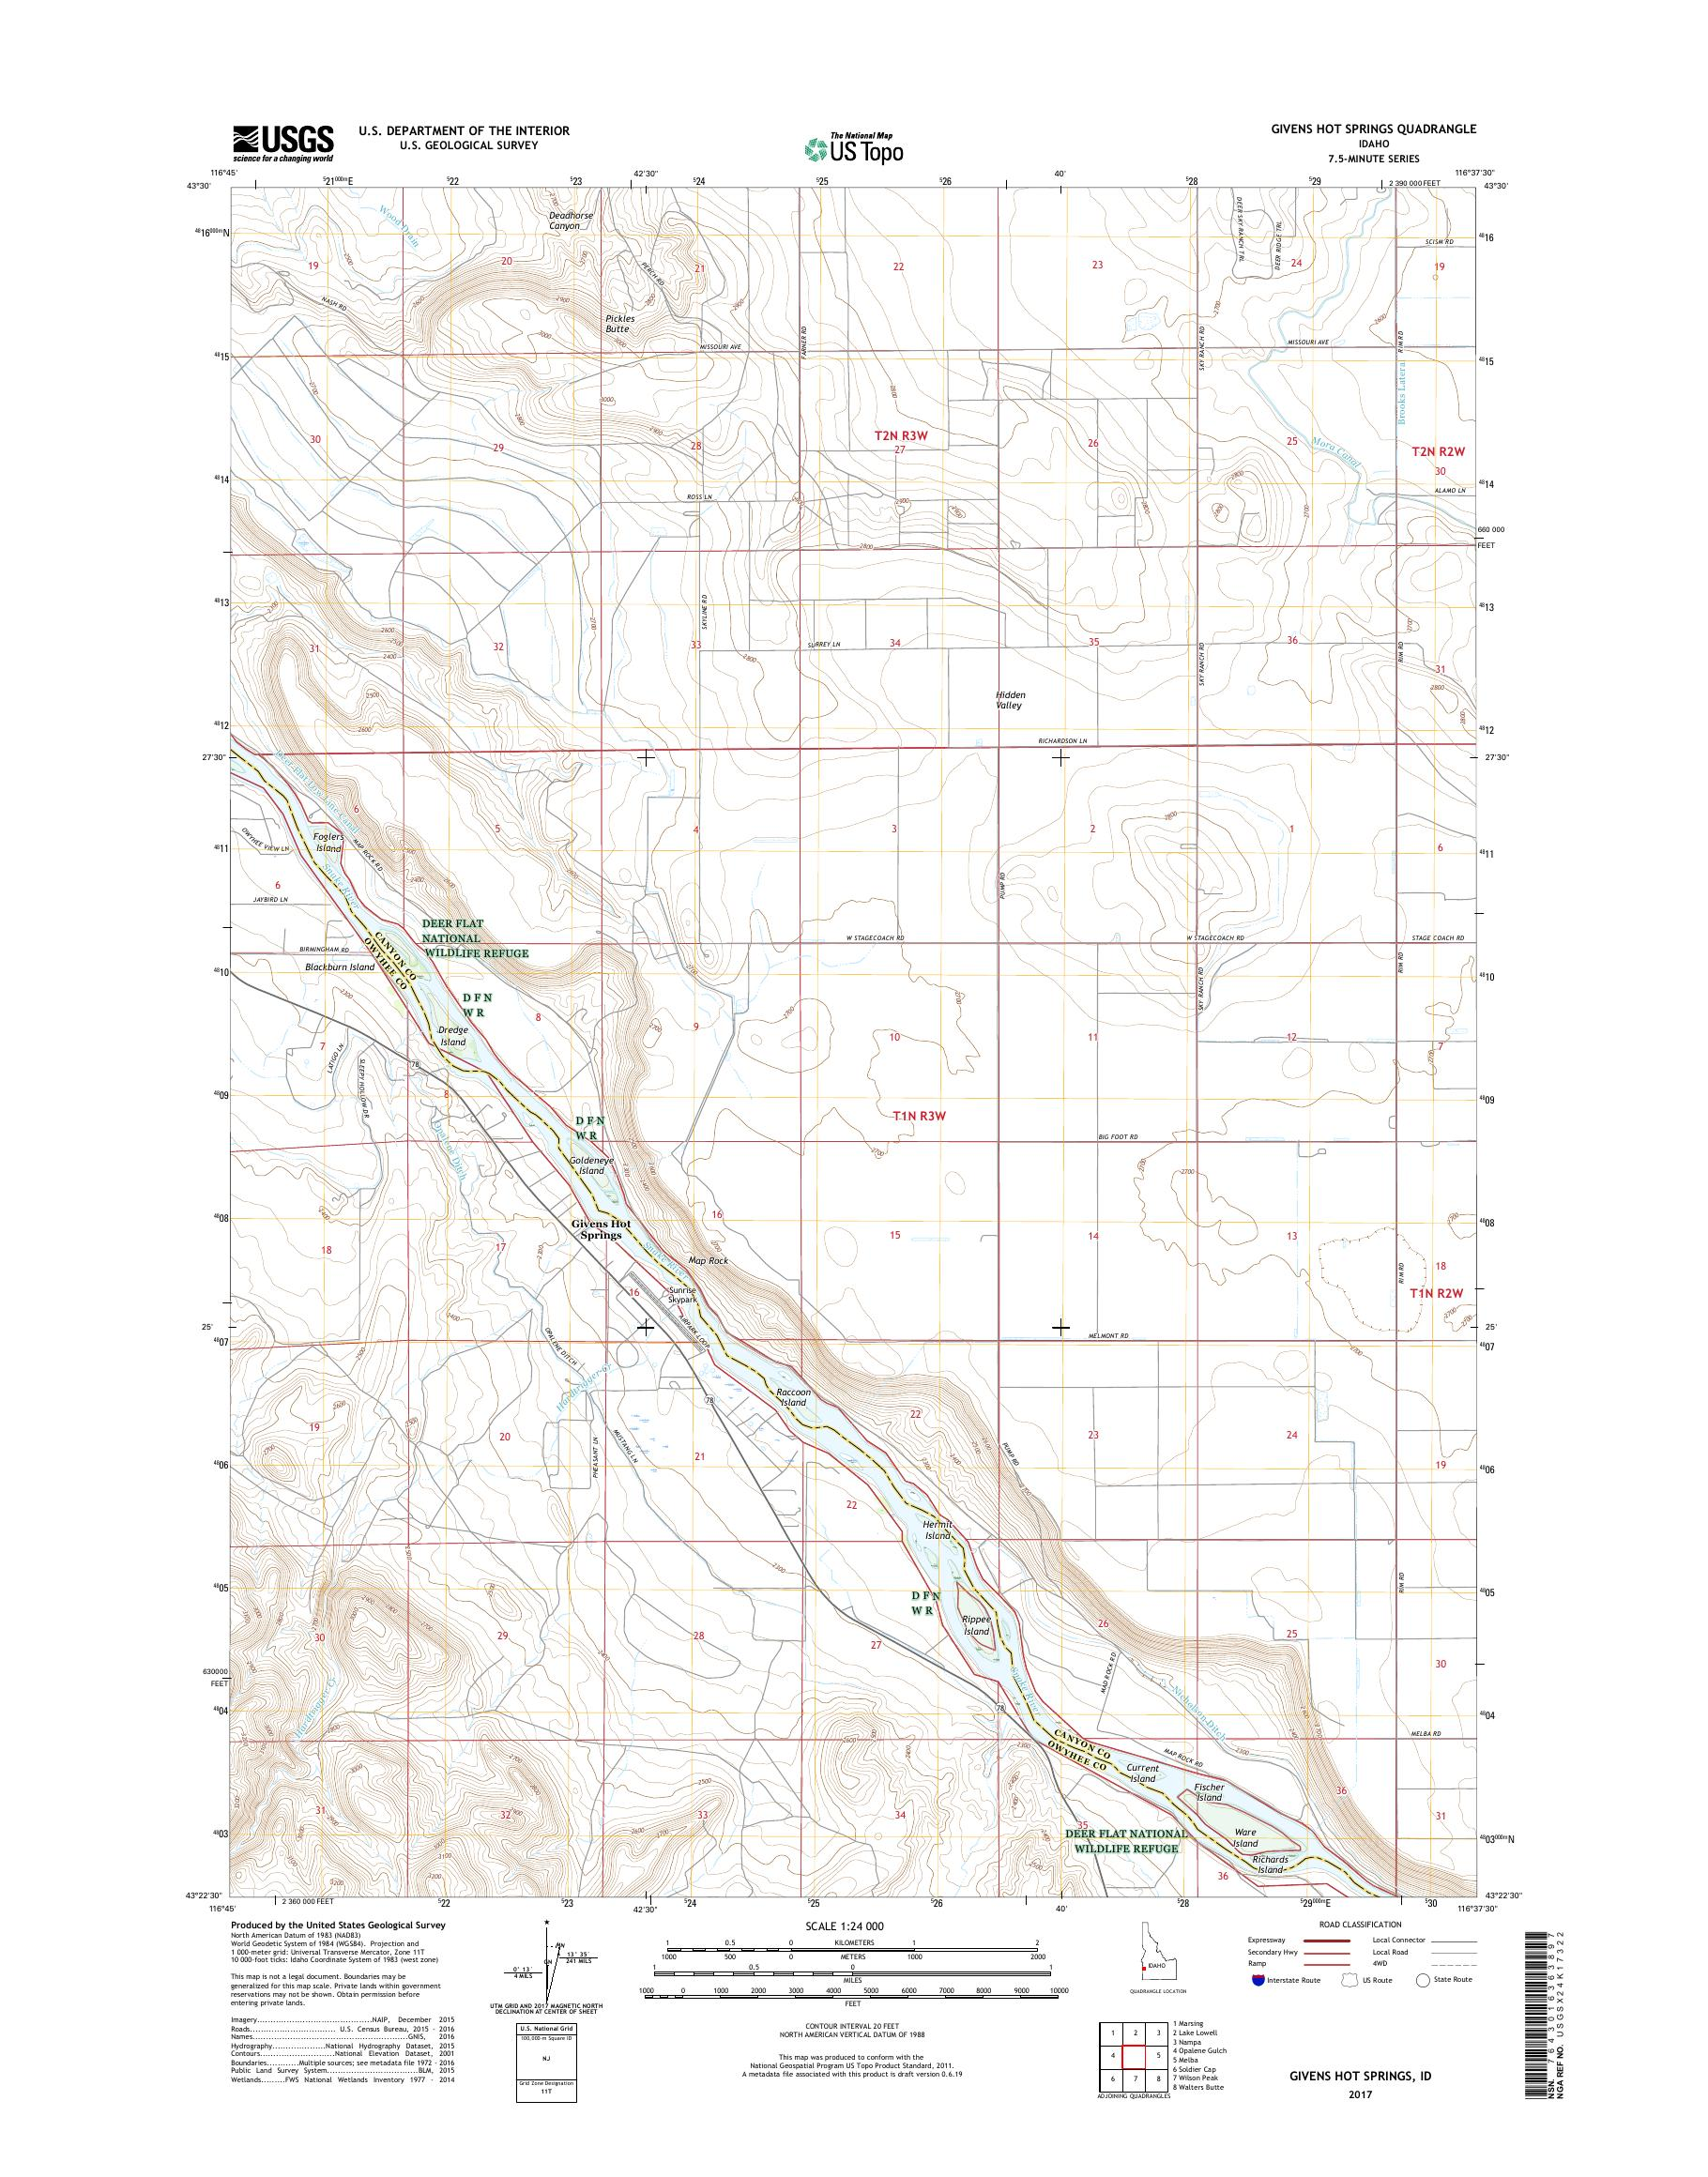 MyTopo Givens Hot Springs, Idaho USGS Quad Topo Map on hot springs wa, hot springs in alaska, hot springs near boise idaho, hot springs park, hot springs asheville nc, hot springs southern california, hot springs lowman idaho, hot springs northern idaho, hot springs canada, hot springs in tennessee, hot springs mccall idaho, hot springs tower, hot springs in wyoming, hot springs buhl idaho, hot springs near atlanta, hot springs west virginia,